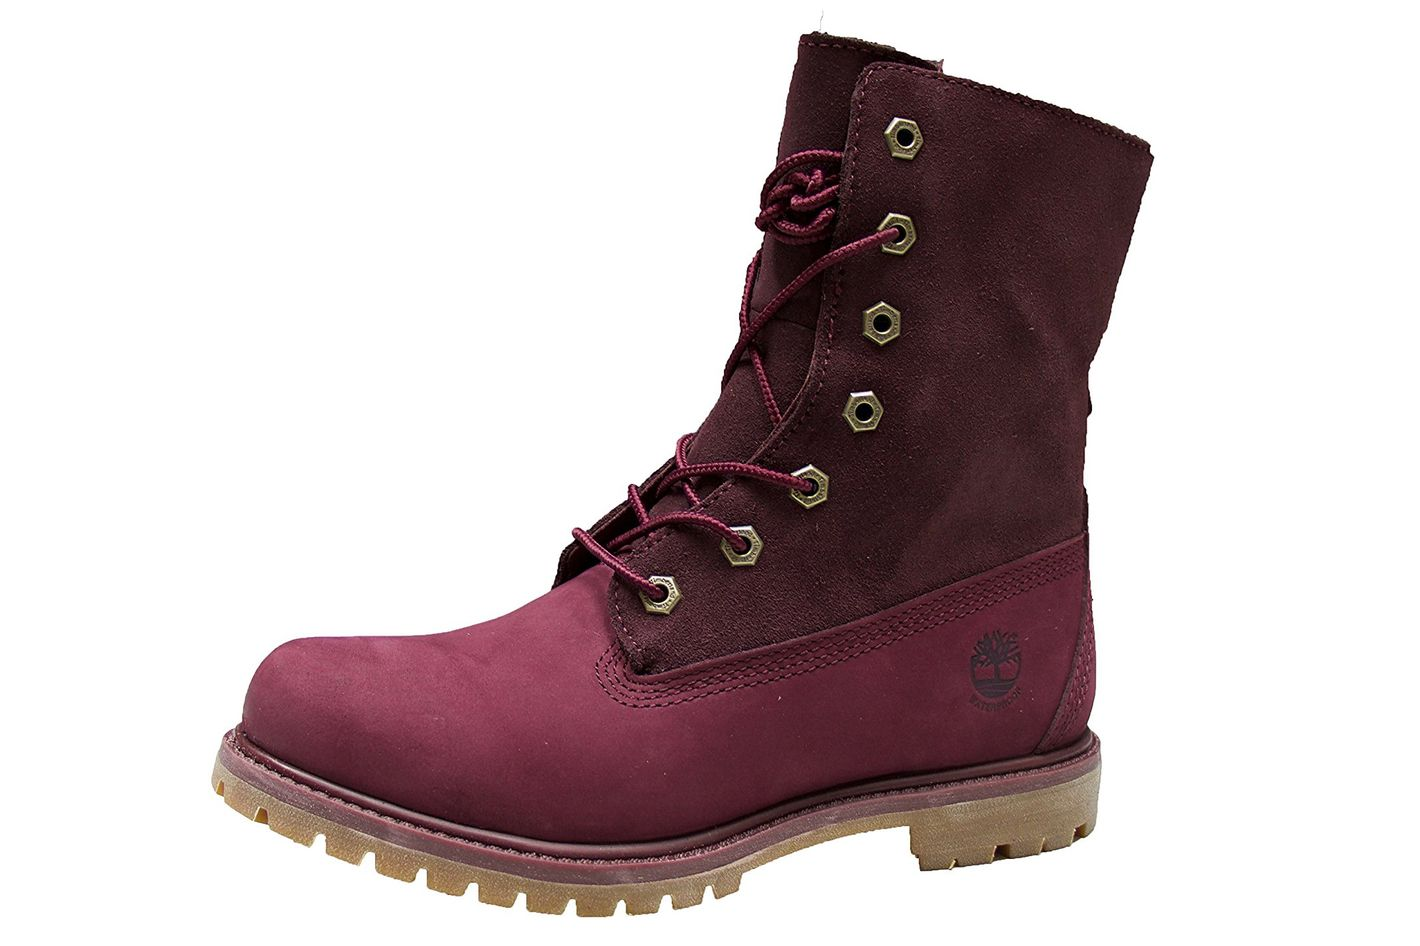 4b1603b90b7 Timberland Women s Teddy Fleece Fold-Down Waterproof Boot